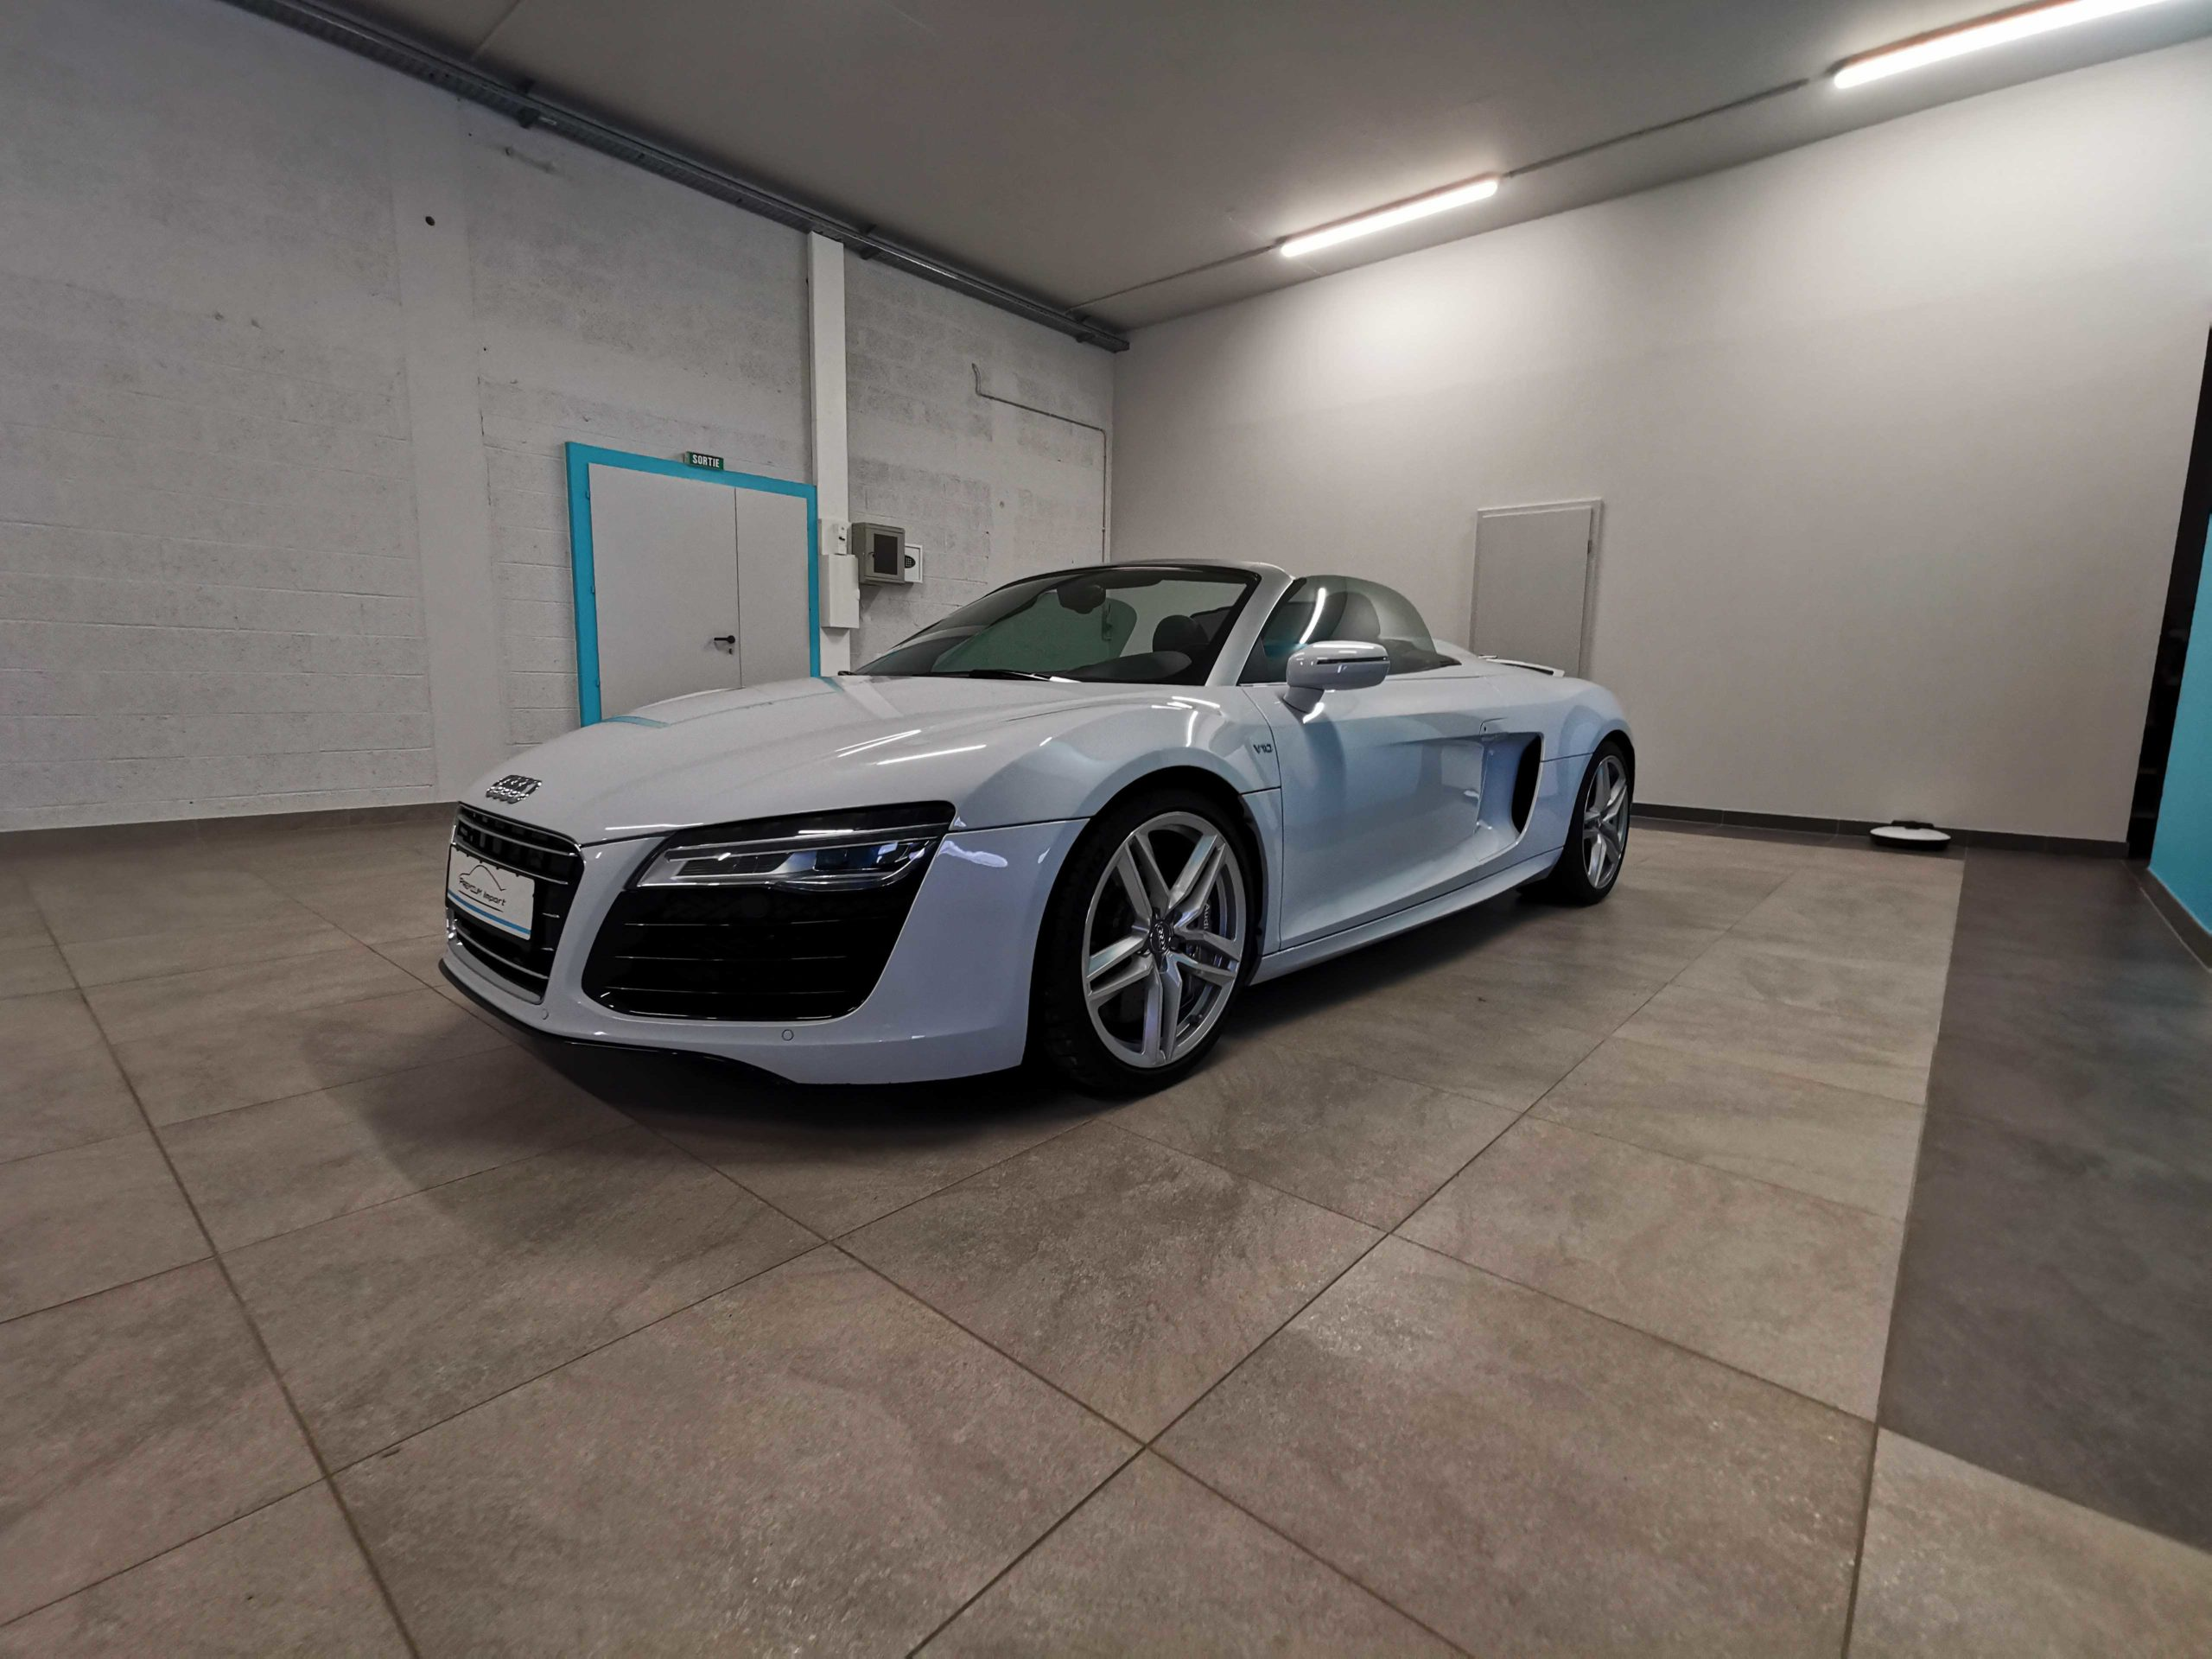 Read more about the article Audi R8 V10 Spider